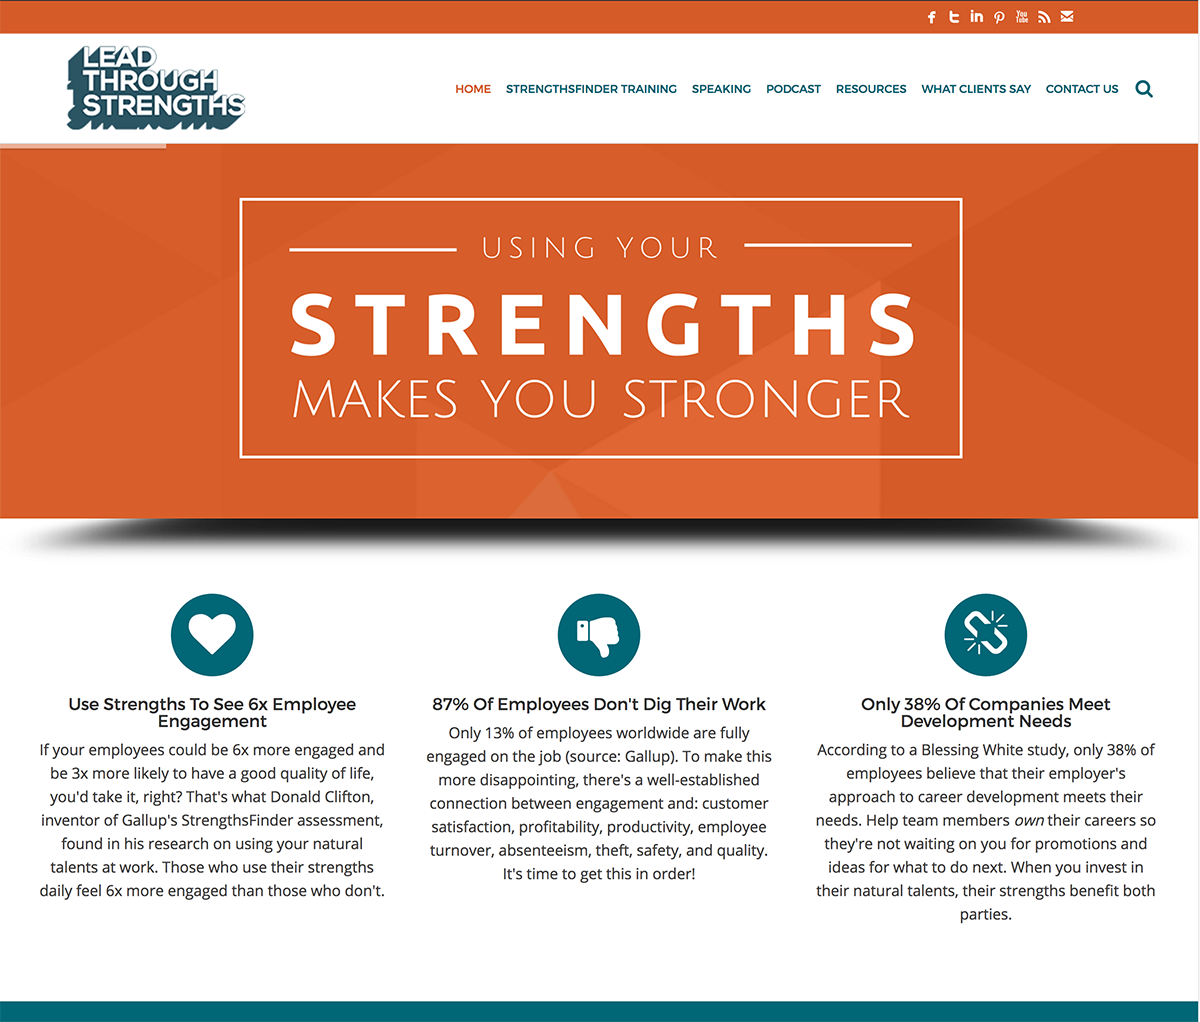 lead through strengths d solutions client lead through strengths